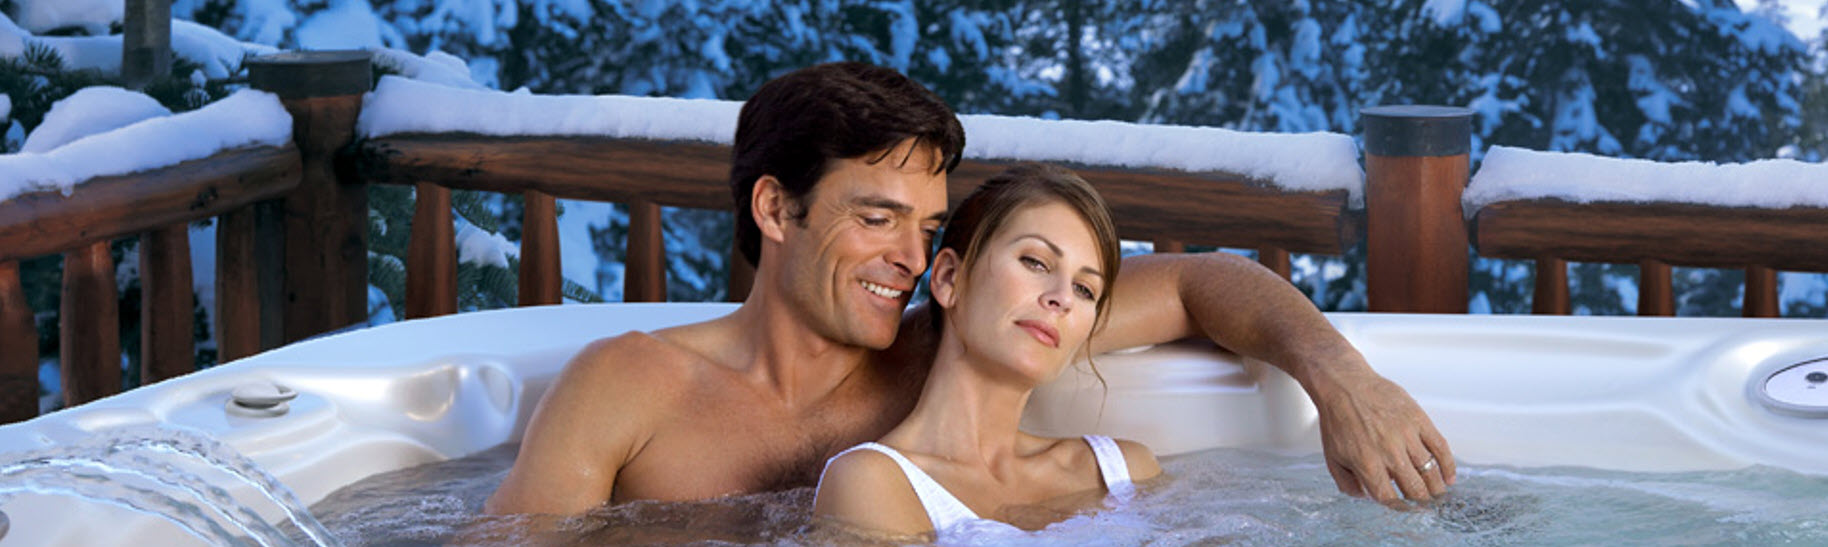 3 Smart Ways to Use Your Backyard Spa in Winter, Small Hot Tubs Creve Coeur